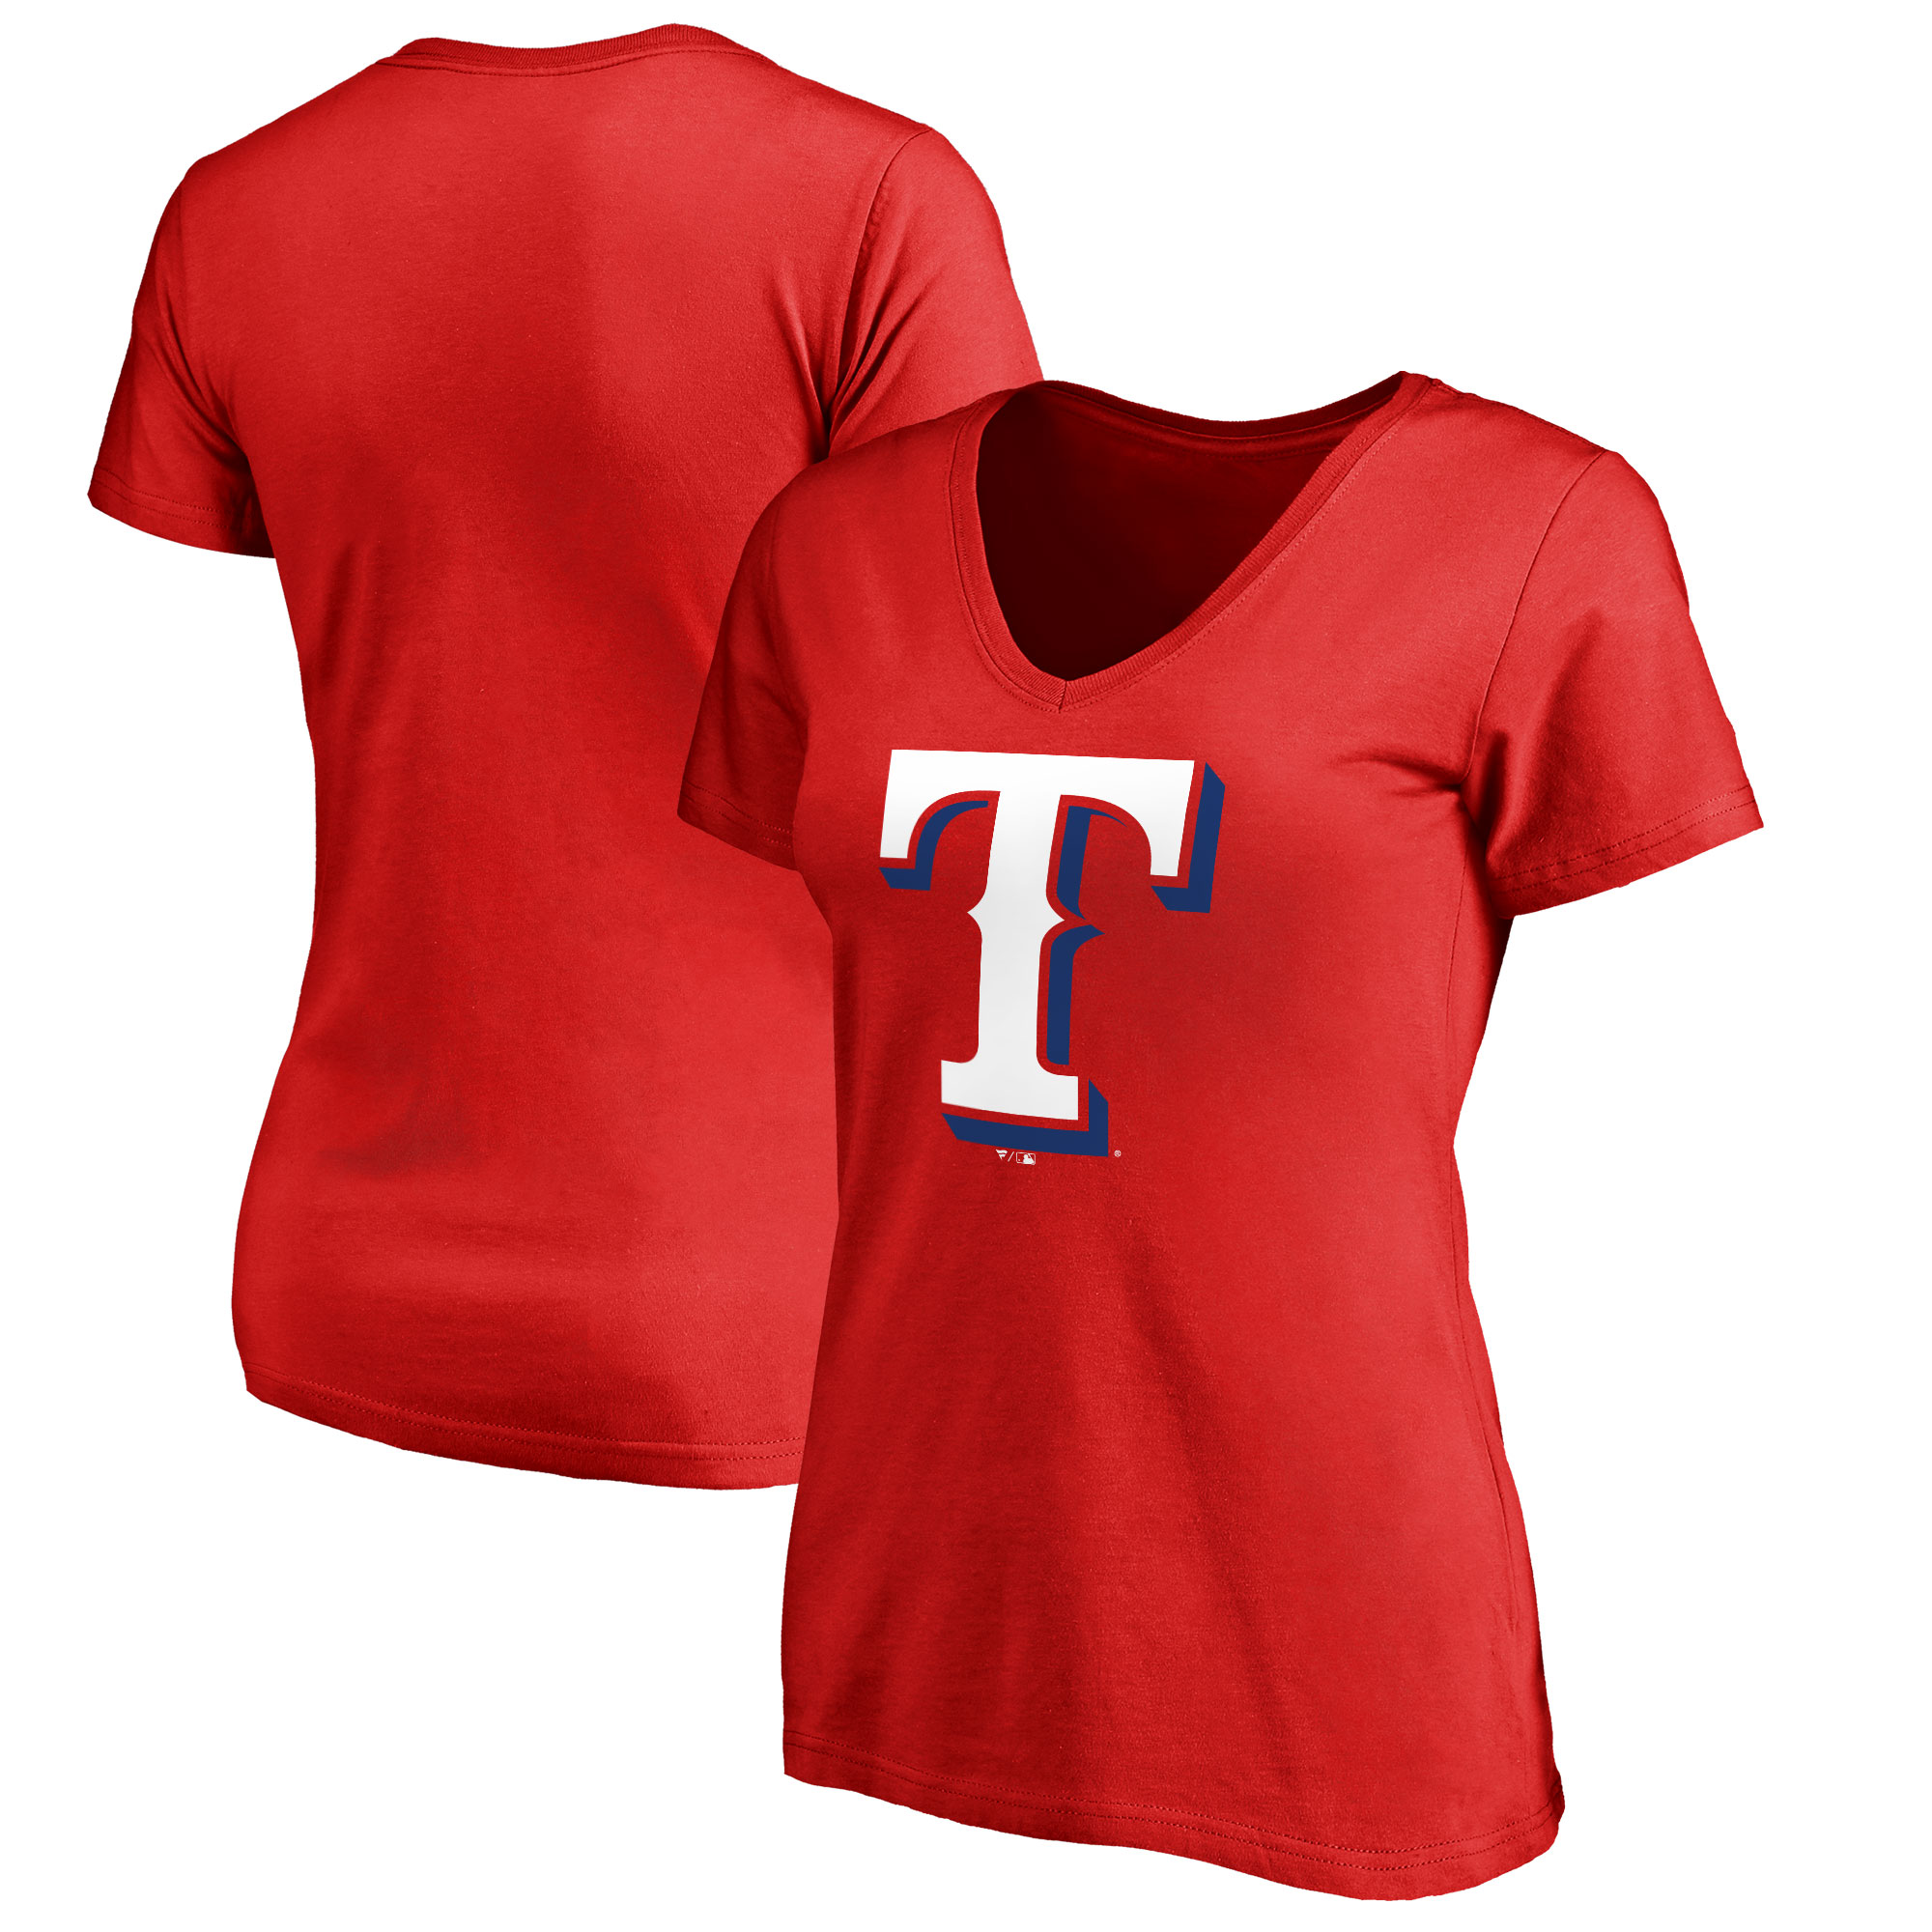 Texas Rangers Women's Plus Sizes Primary Team Logo T-Shirt - Red